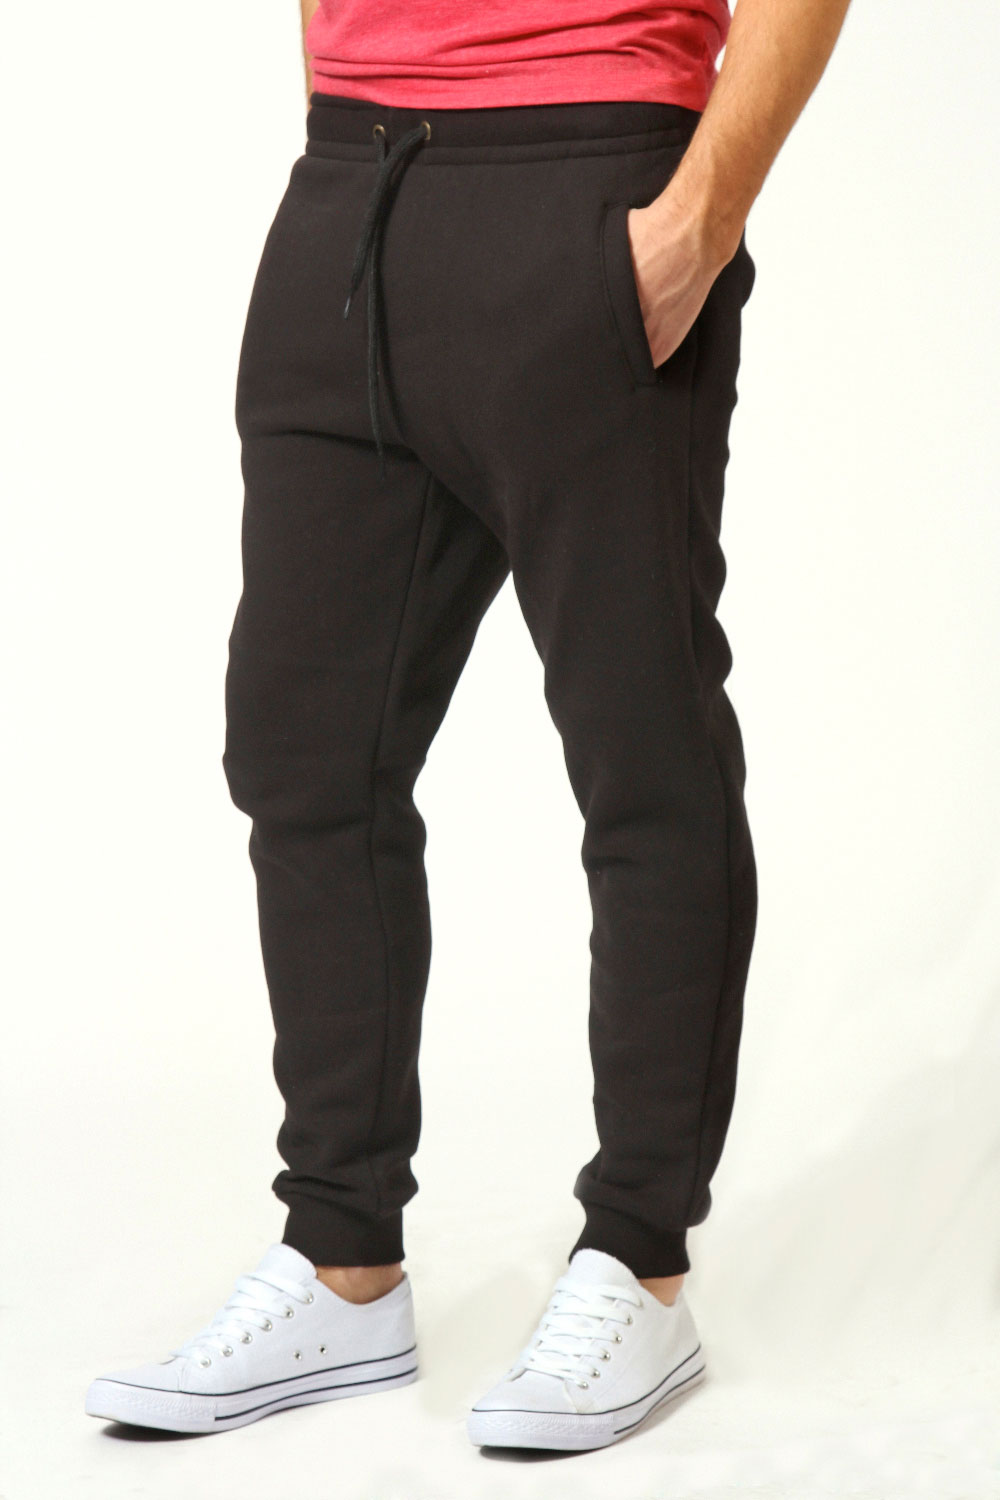 Men's Joggers & Sweatpants (27) Dial in the perfect look with men's joggers and sweatpants. Browse from a variety of fits, colors and materials to find the men's joggers that suit your sport and style.